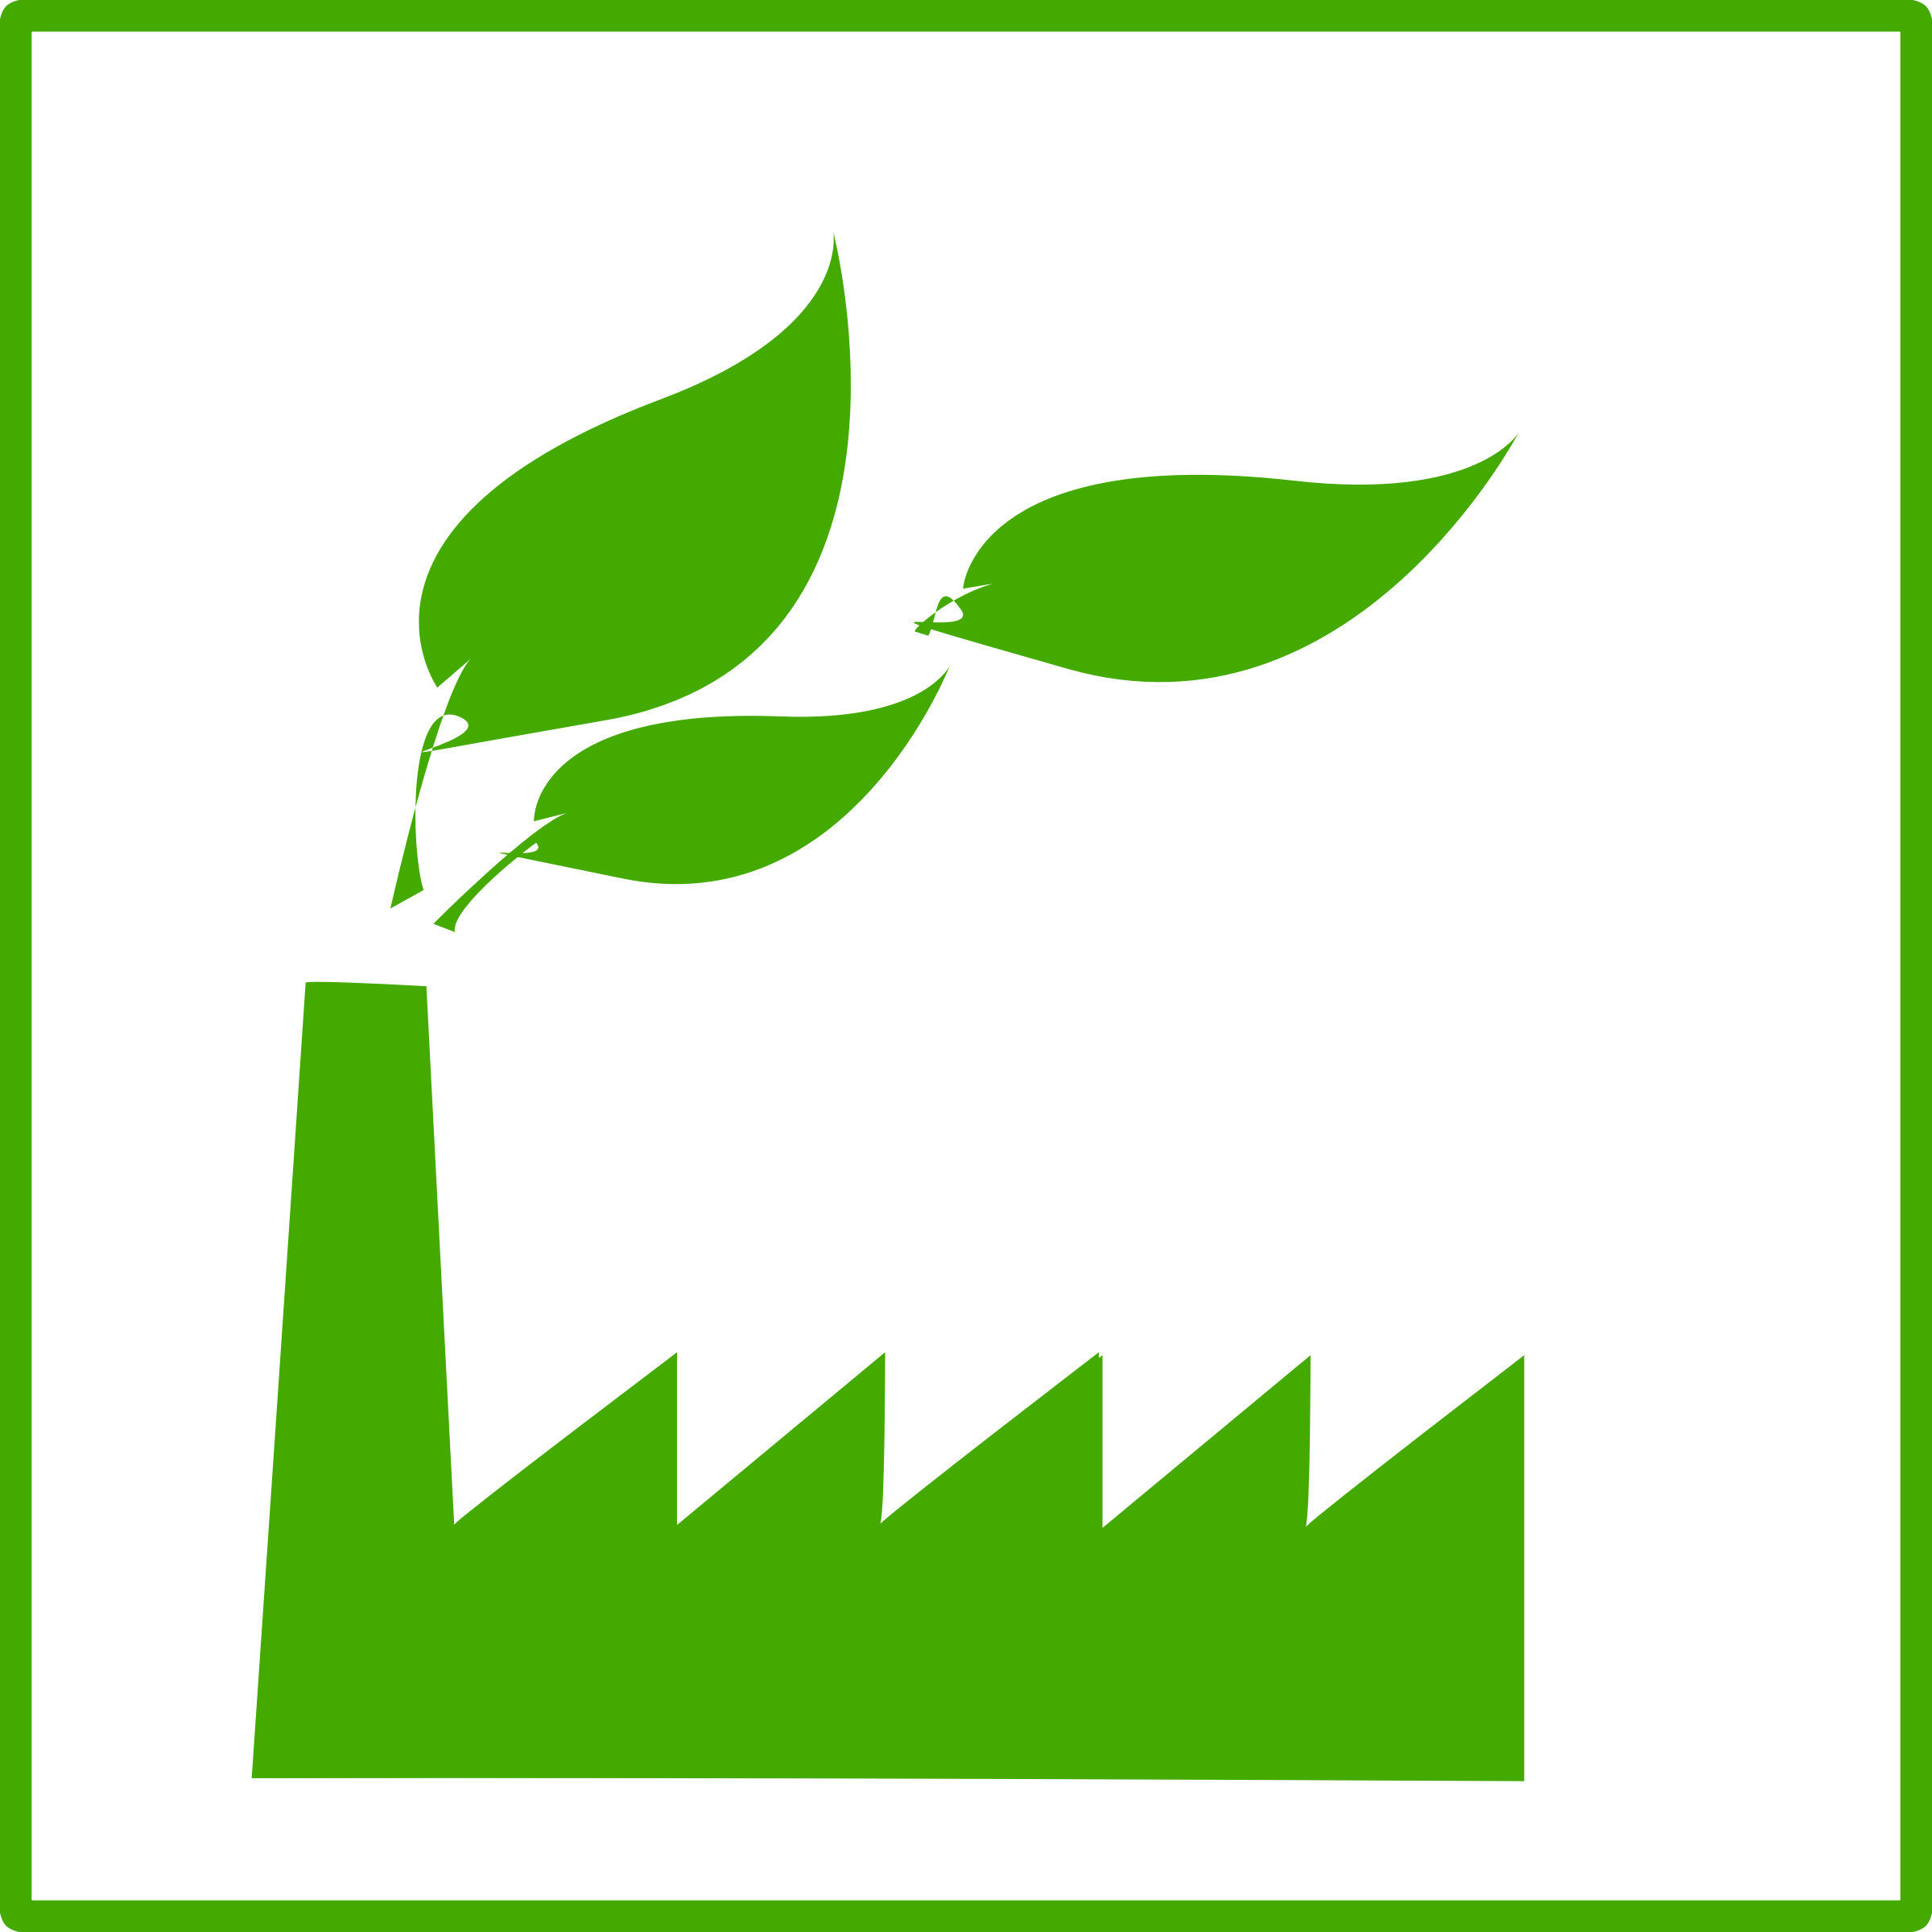 eco green factory icon: openclipart.org/detail/182239/eco-green-factory-icon-by...